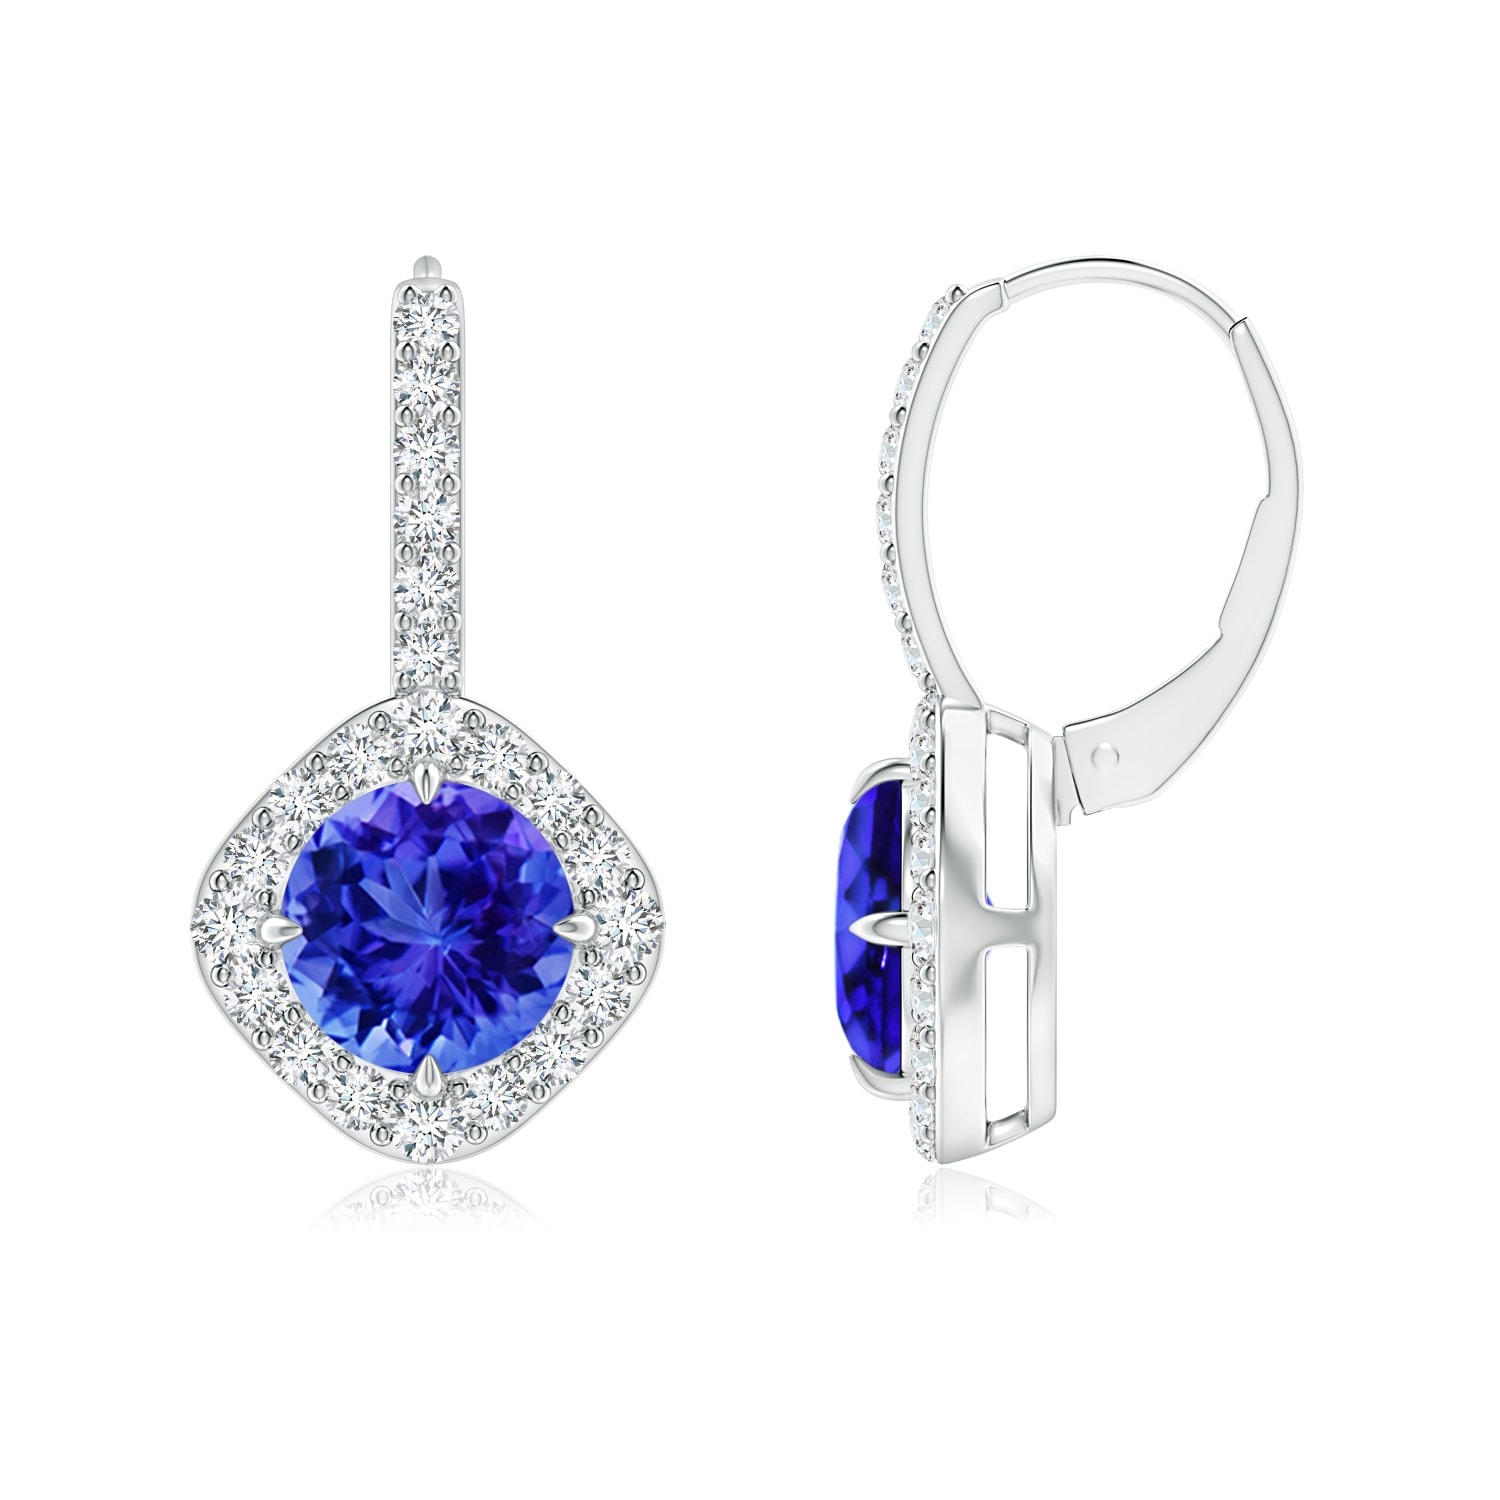 Diamond Rings For Sale Walmart: Claw-Set Tanzanite And